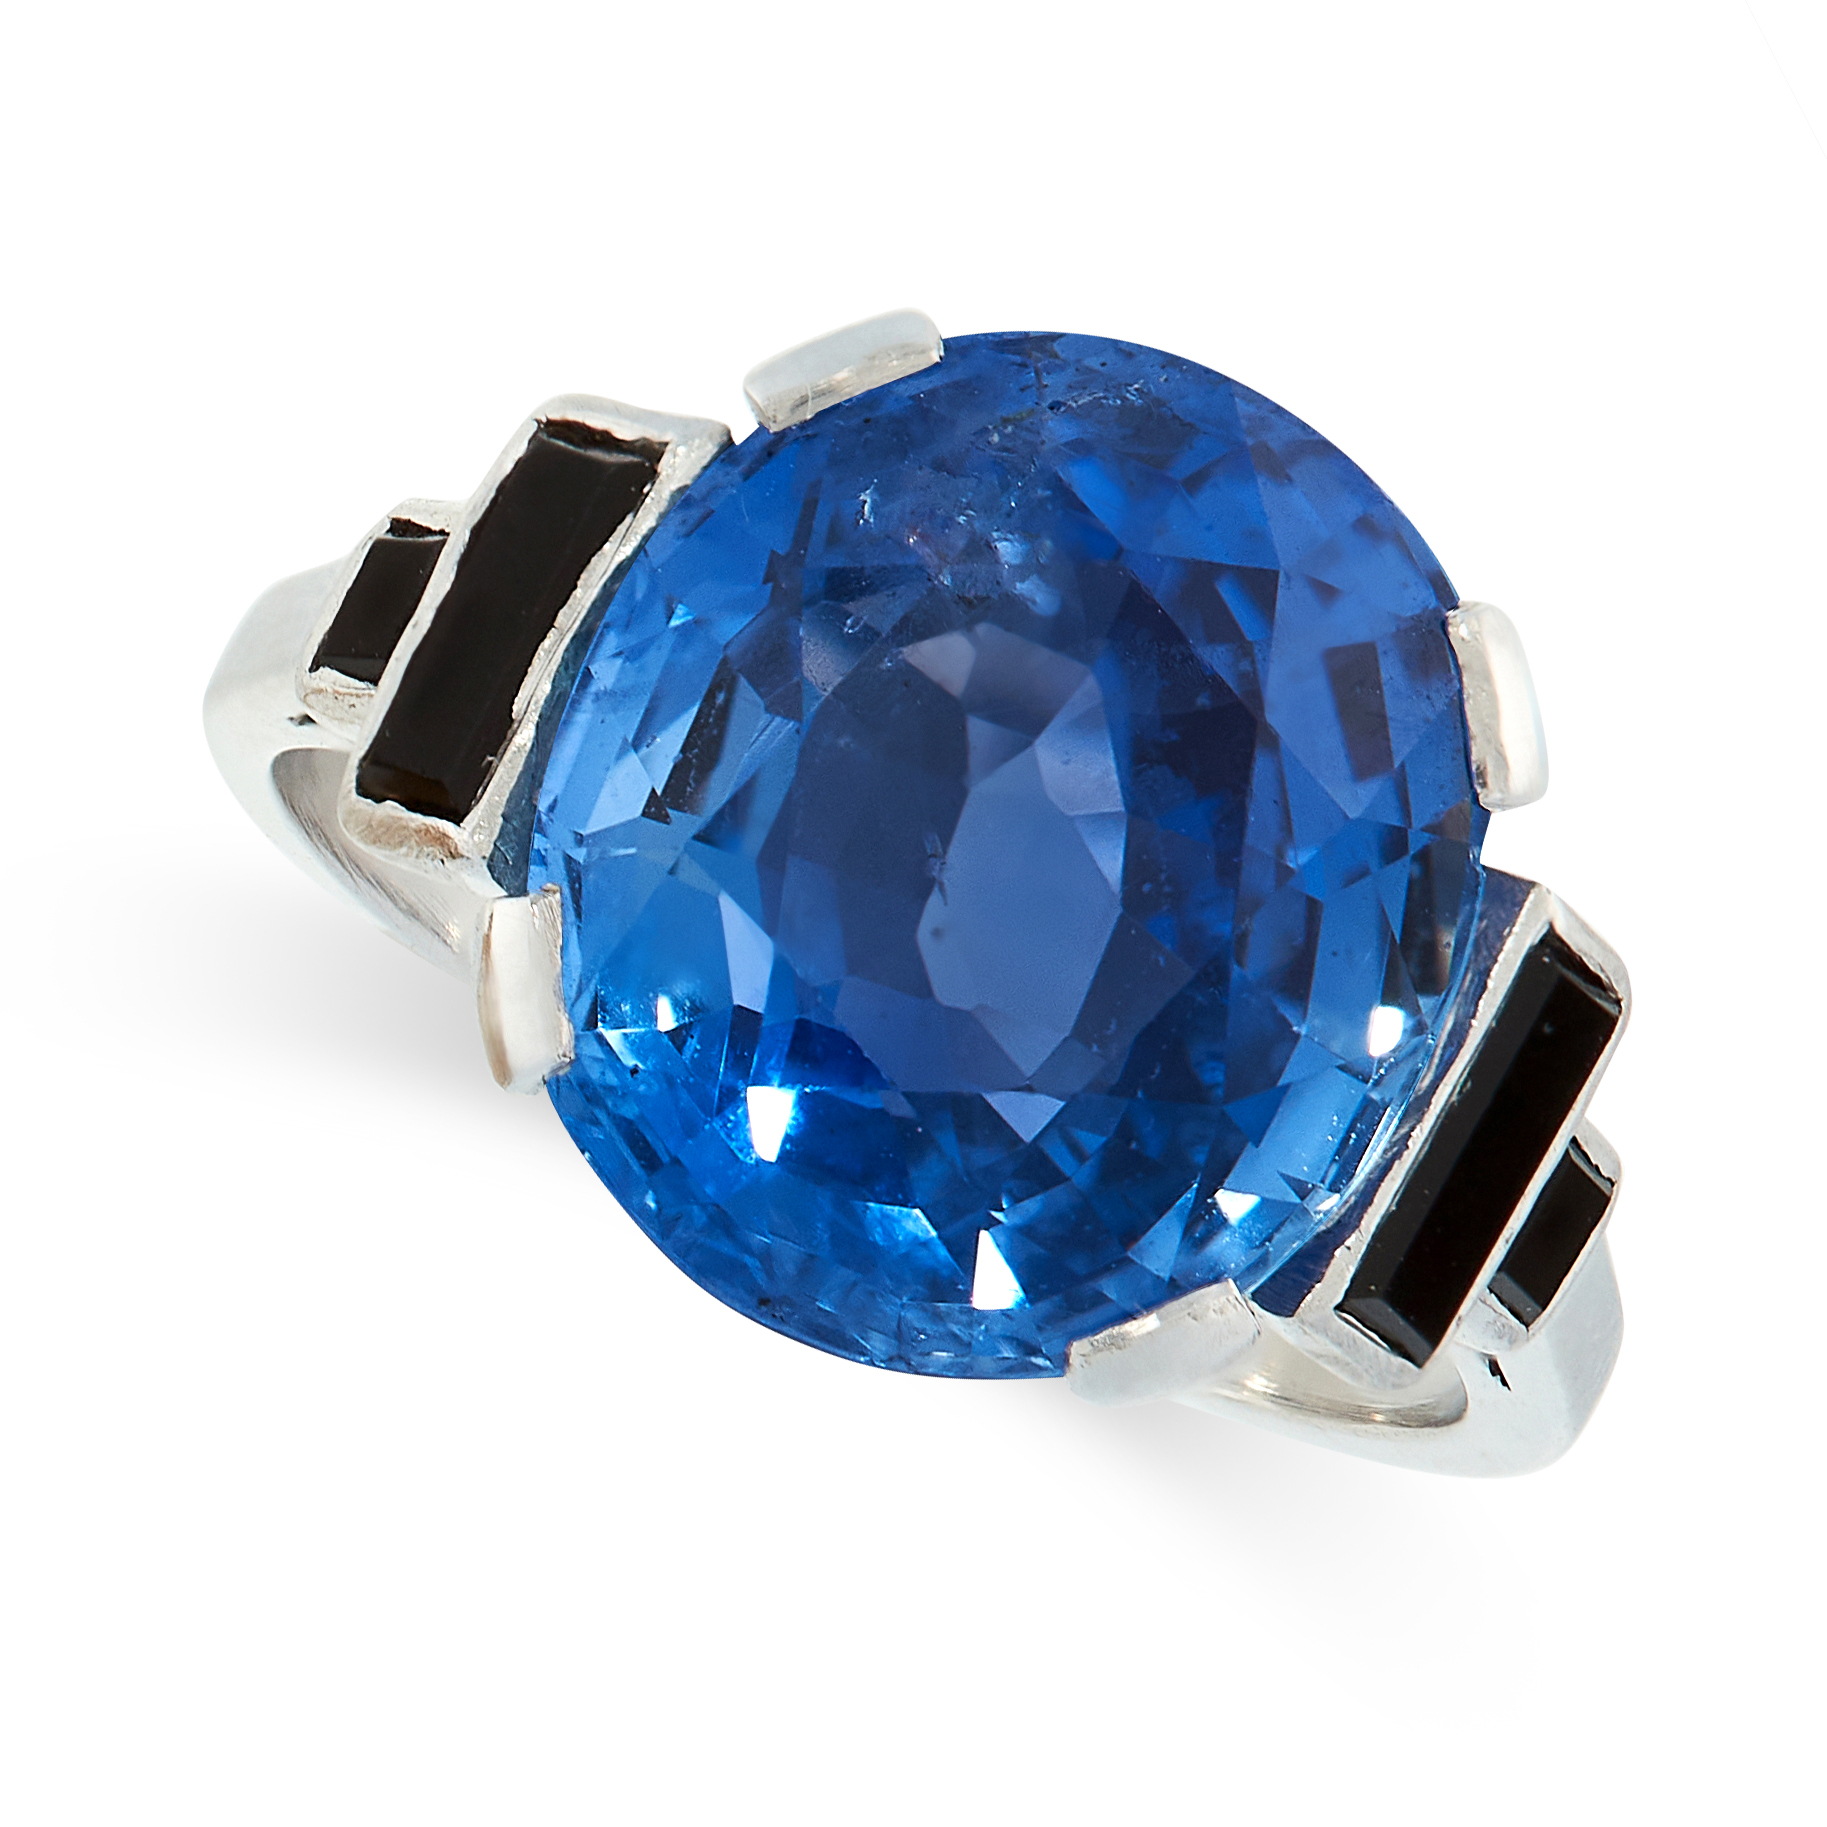 CEYLON NO HEAT SAPPHIRE AND ONYX RING comprising of an oval cut sapphire of 8.66 carats between